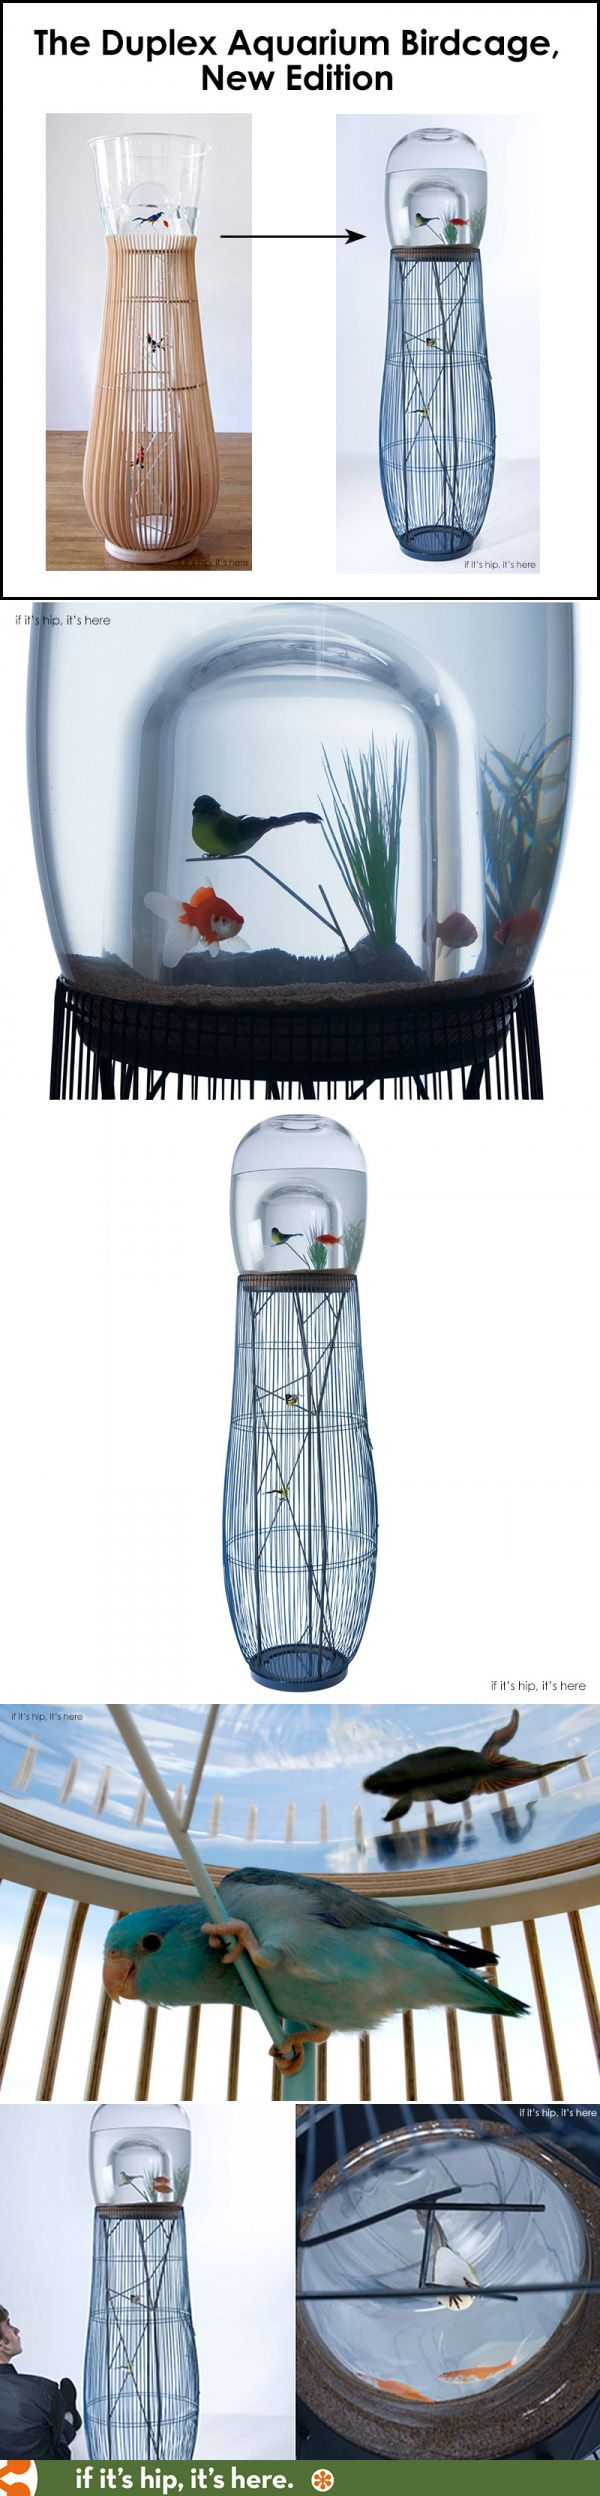 The Duplex Version 2 is a combination birdcage fish tank now available in signed, limited editions. | http://www.ifitshipitshere.com/duplex-aquarium-combo-birdcage-new-edition/